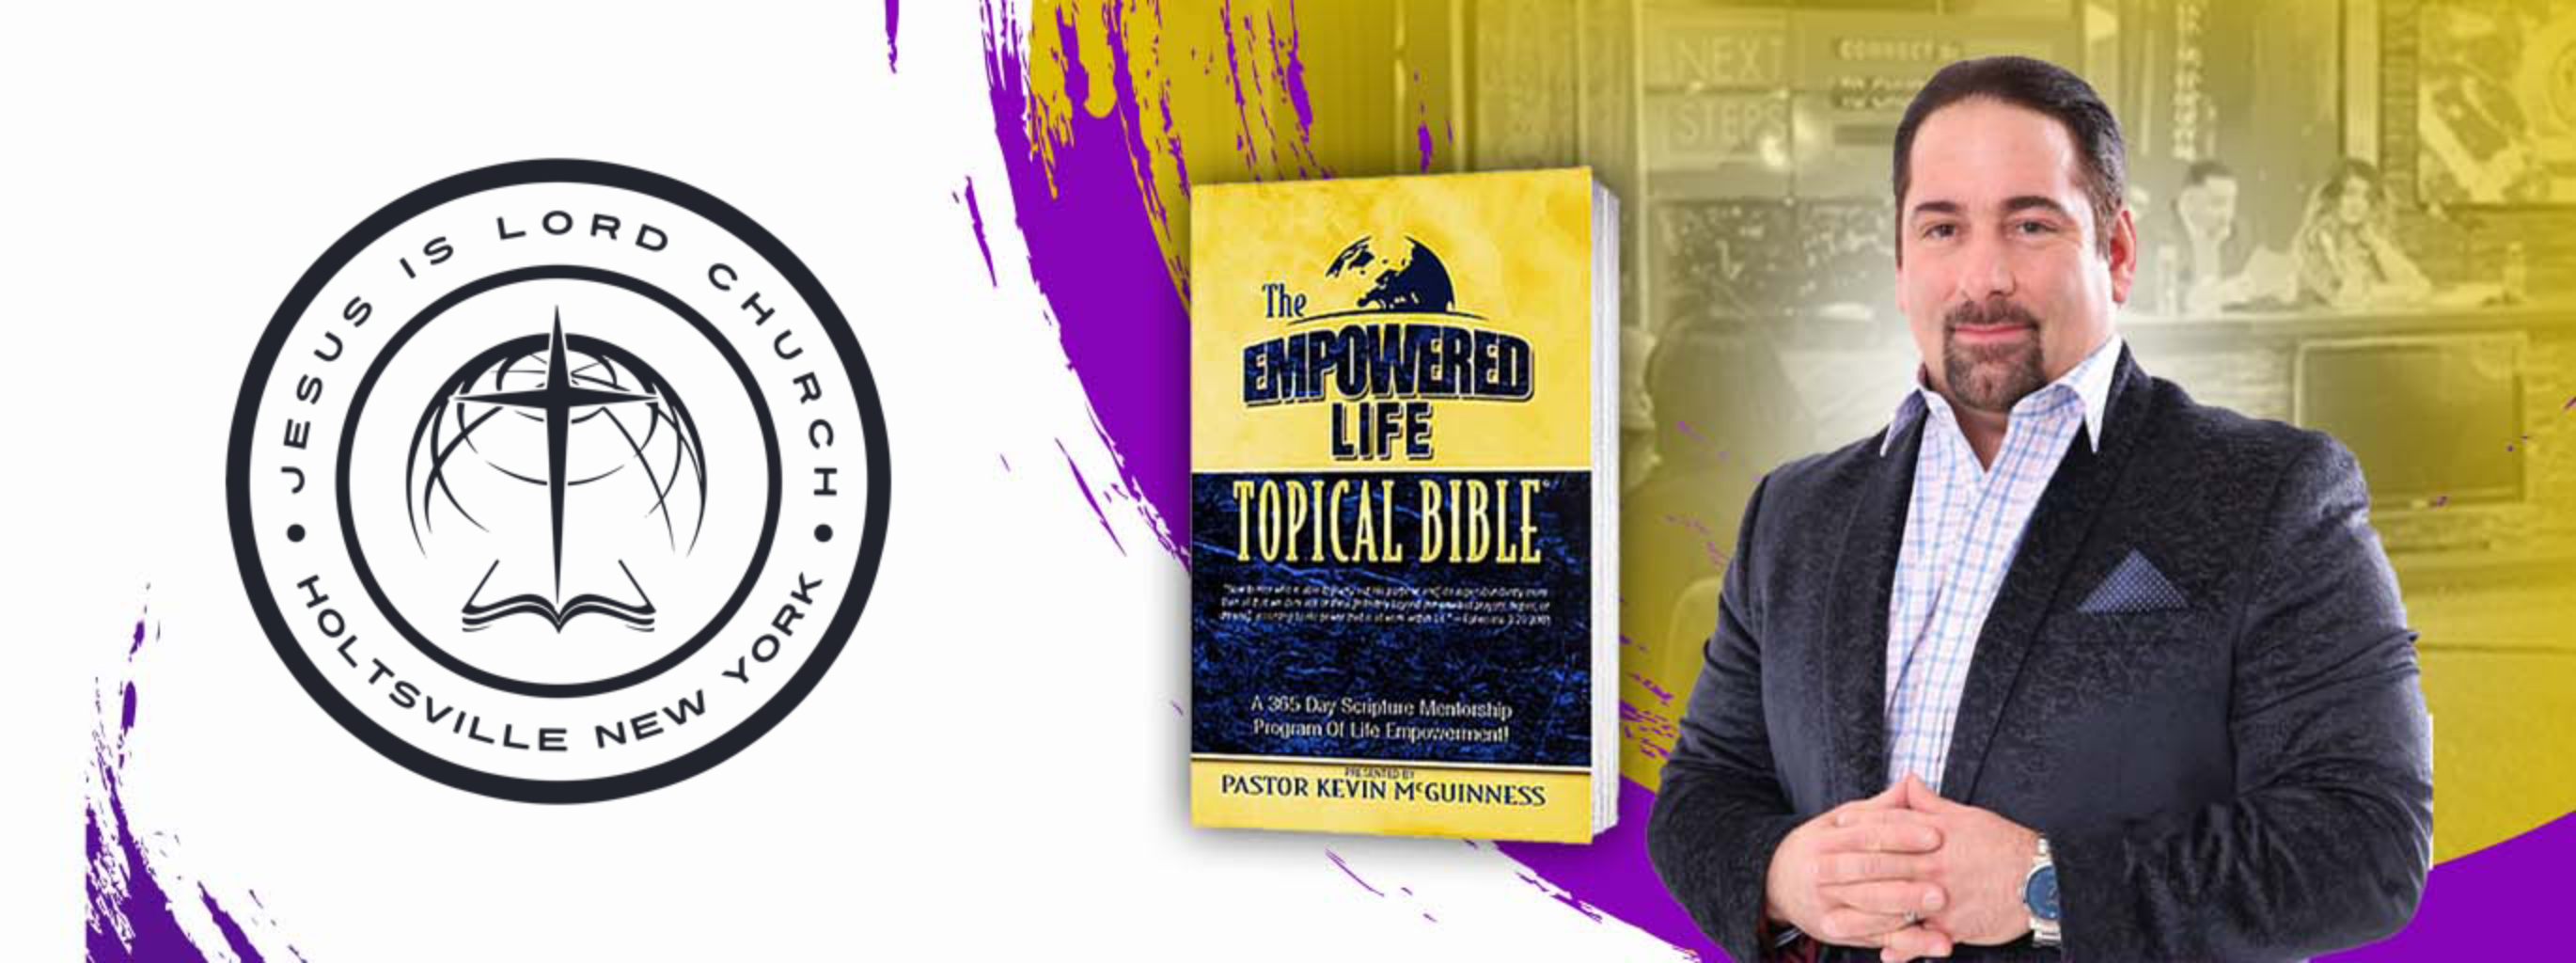 The Empowered Life Topical E-Bible - Pastor Kevin McGuinness